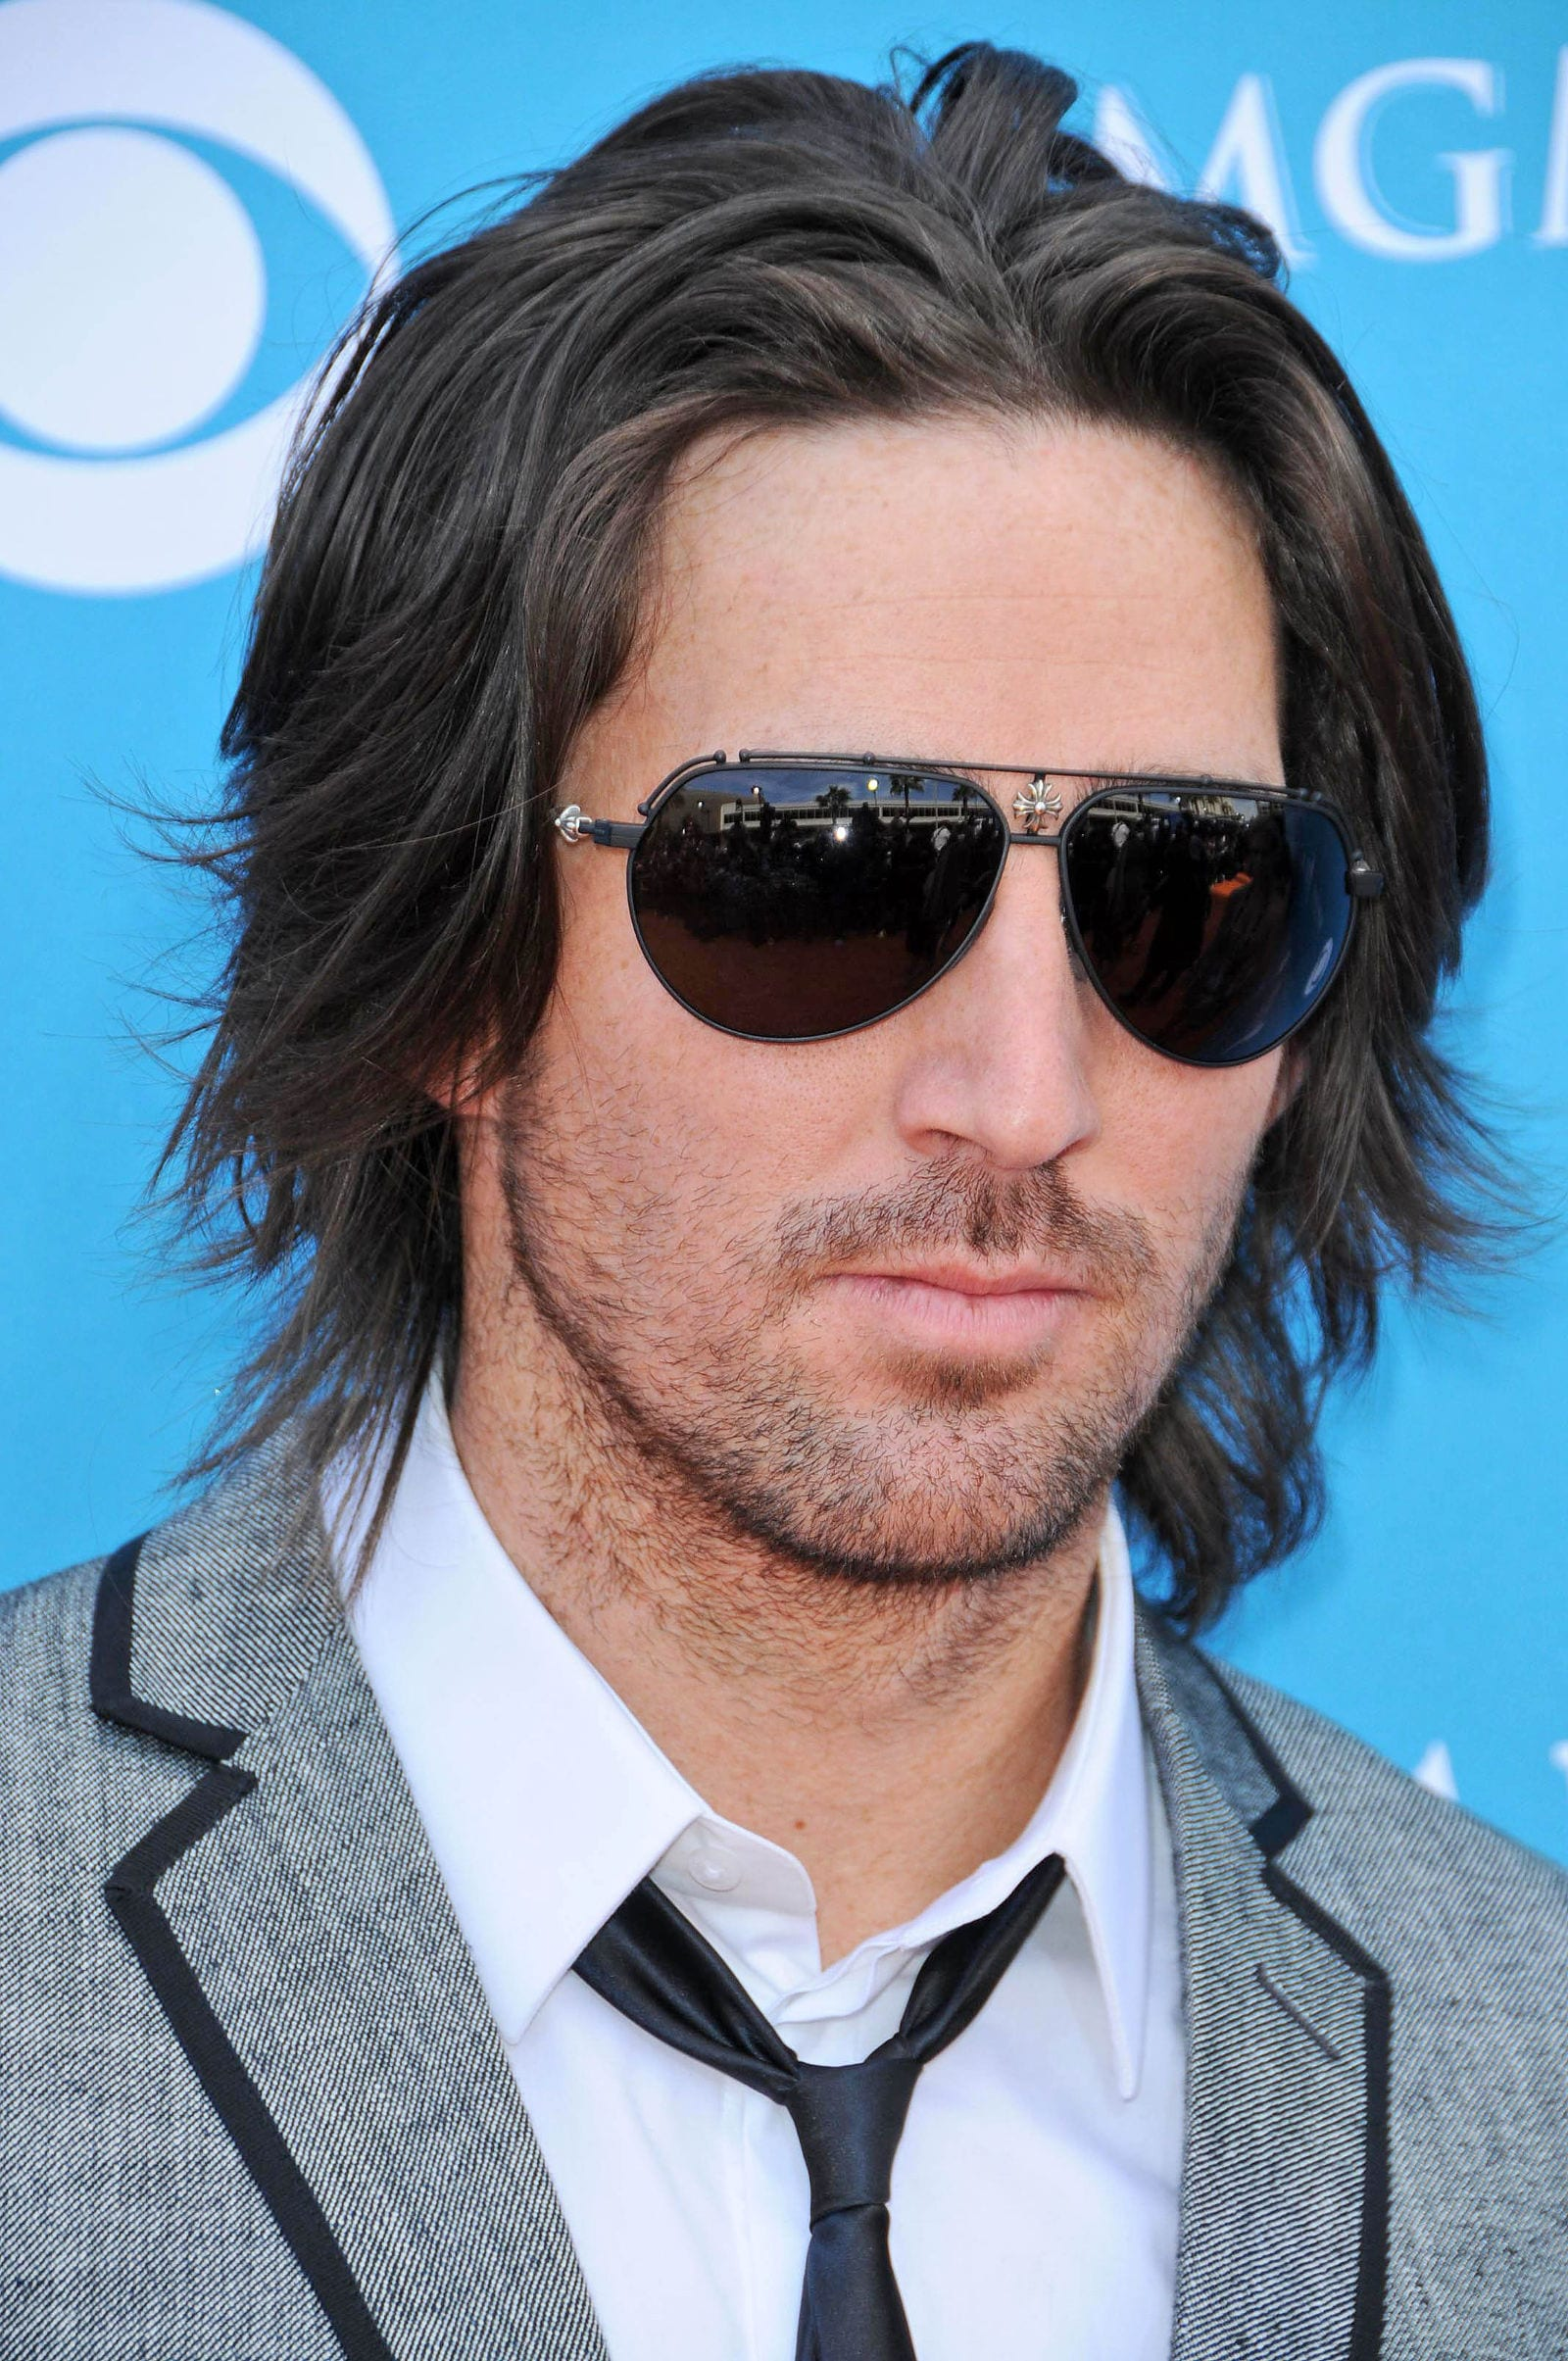 Jake Owen long hair flow glasses